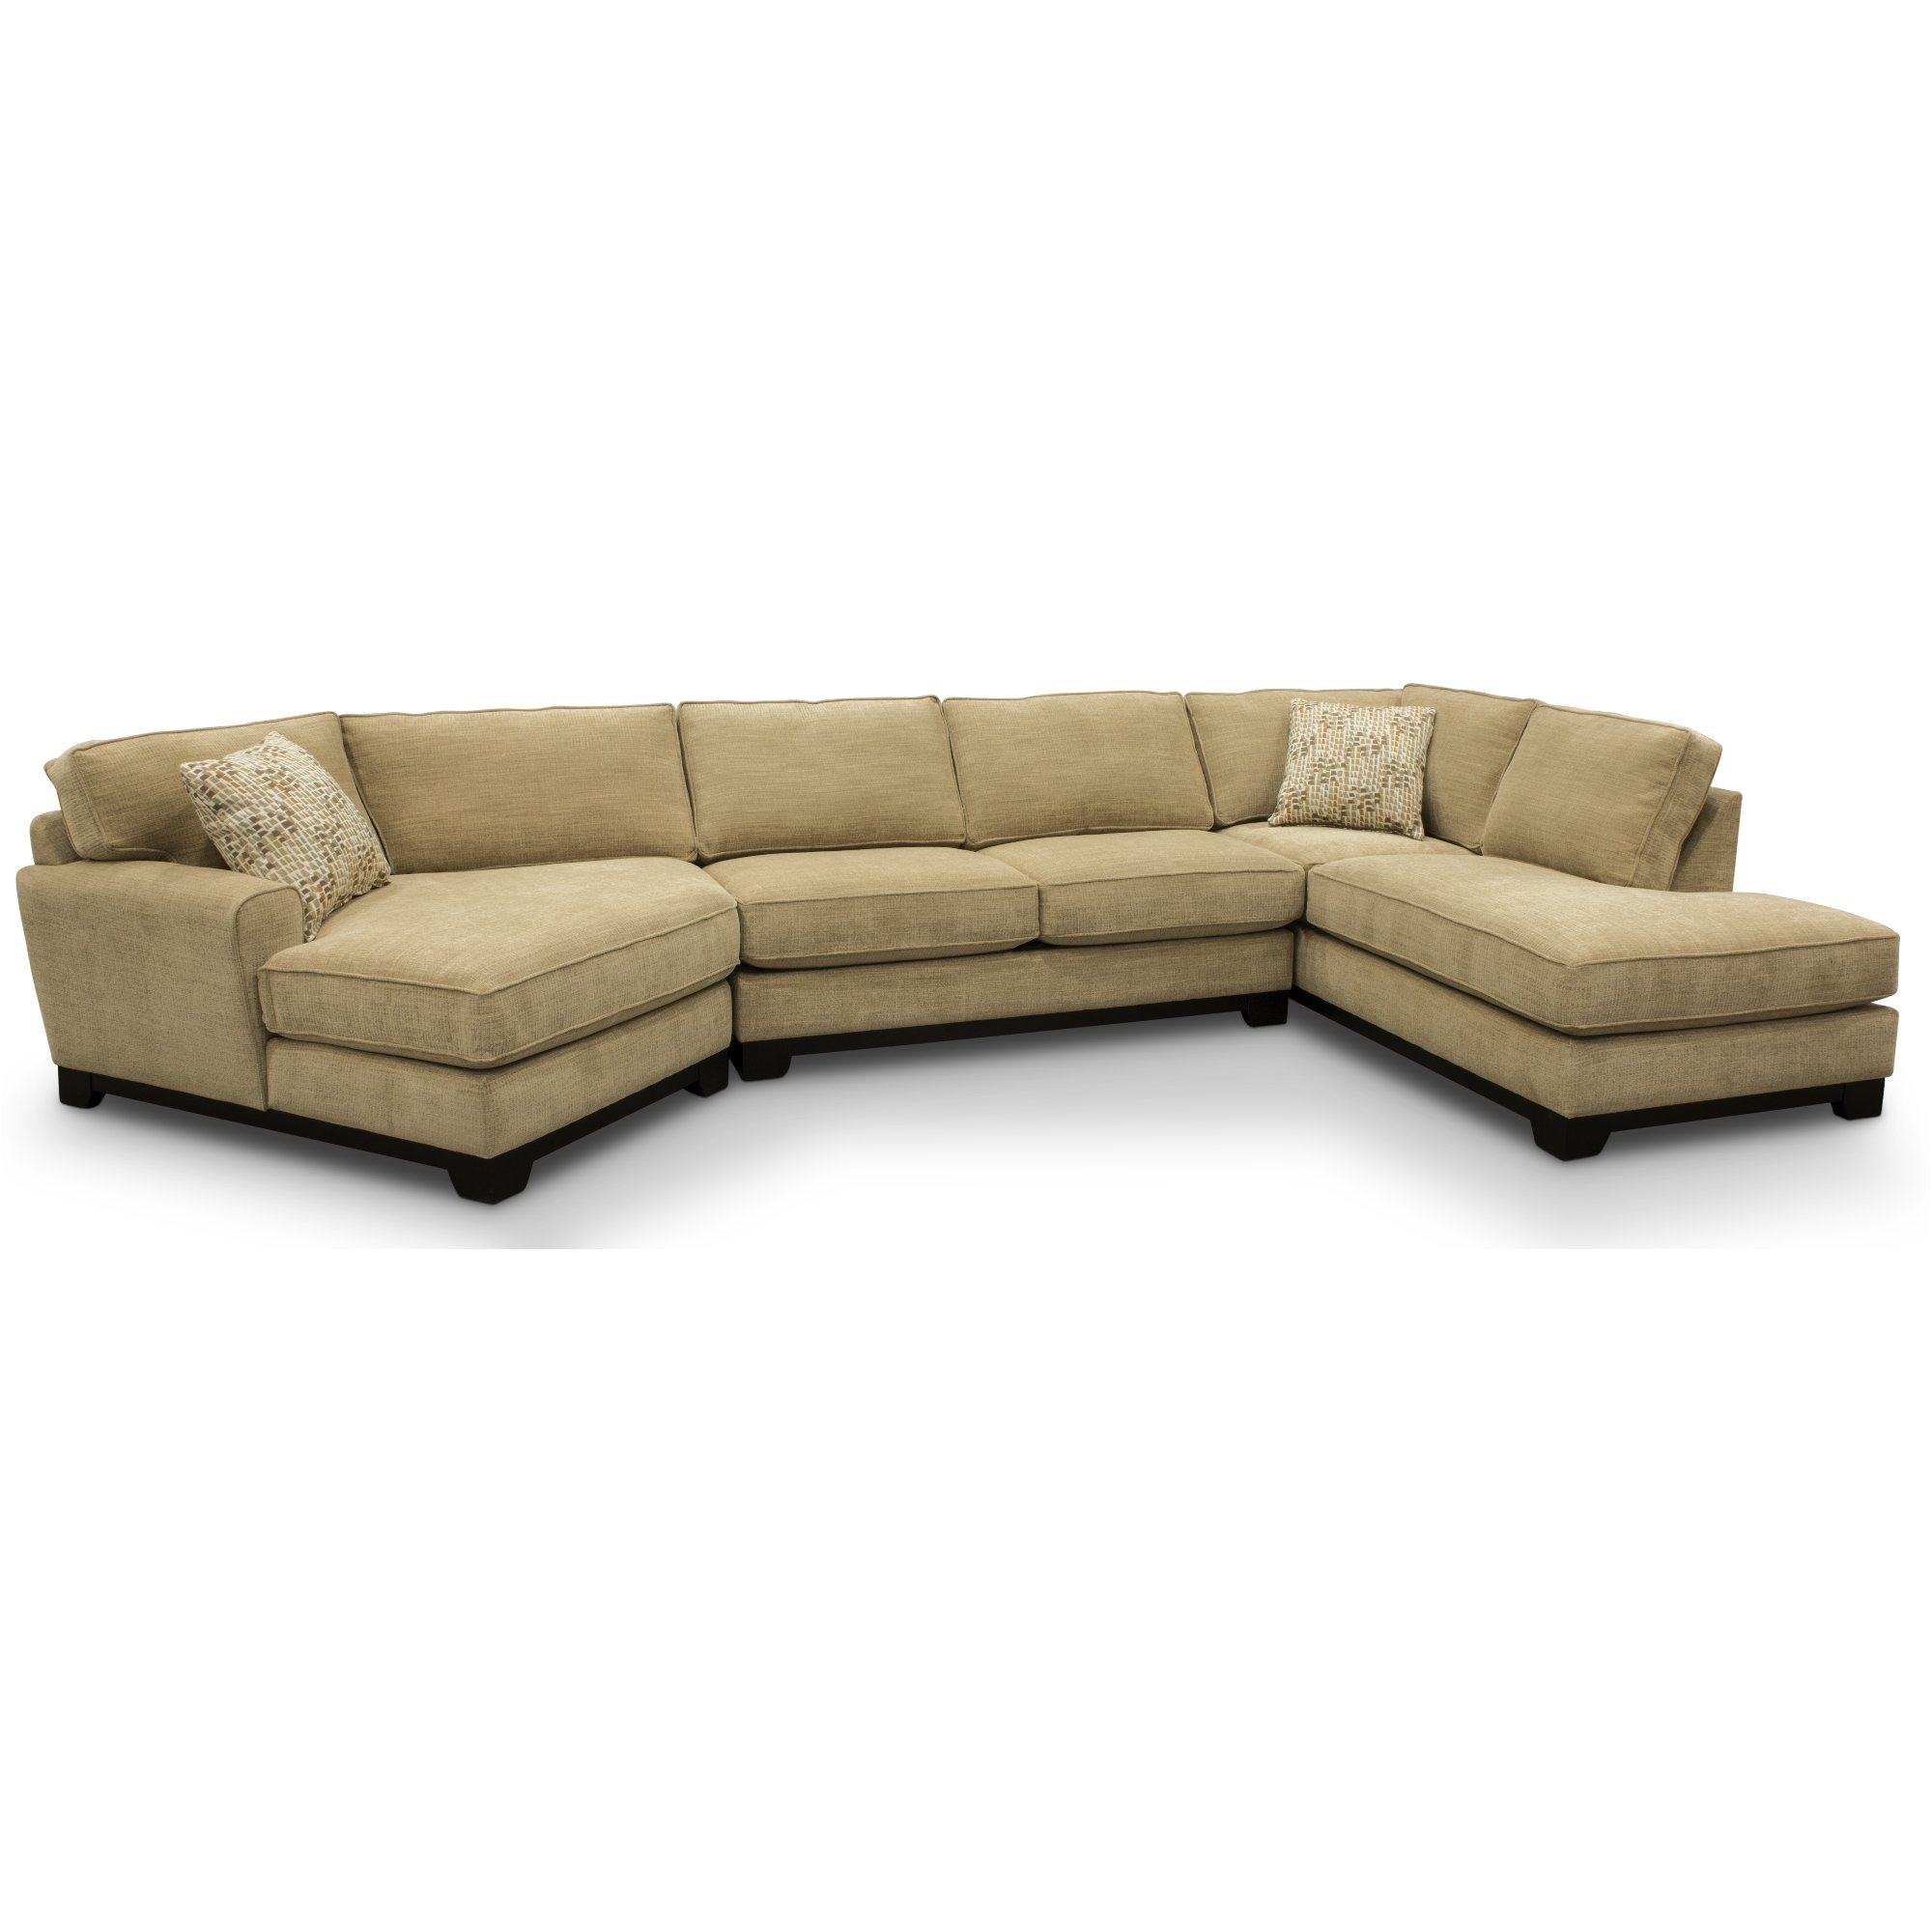 Beige 3 Piece Sectional Sofa with RAF Chaise - Pisces | RC Willey ...